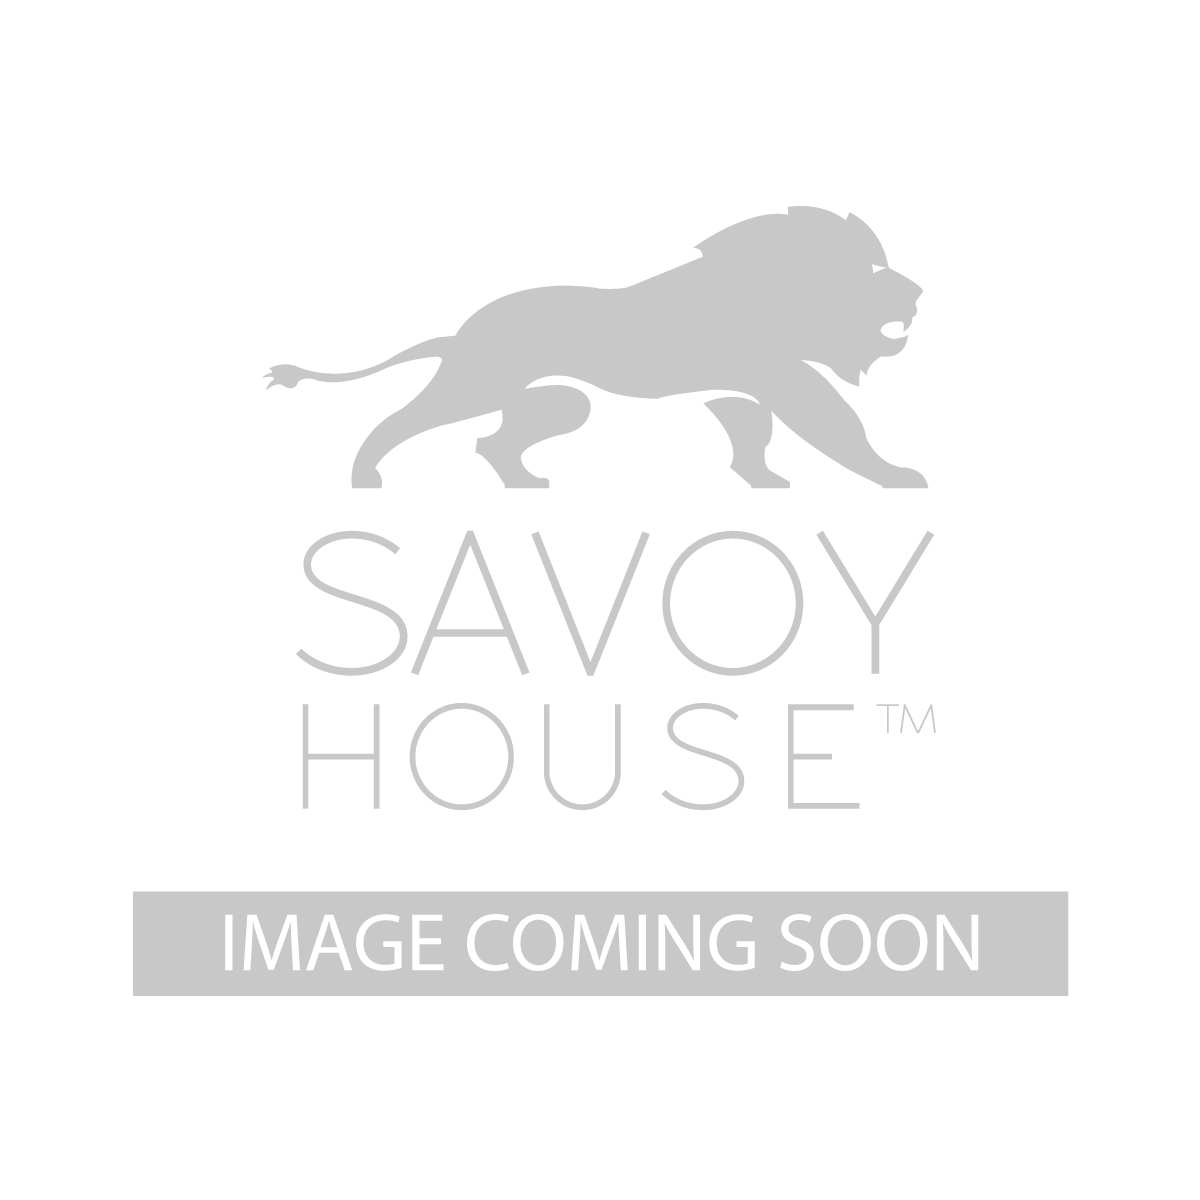 56 5065 2SV SN Payson 56 inch 2 Blade Ceiling Fan by Savoy House